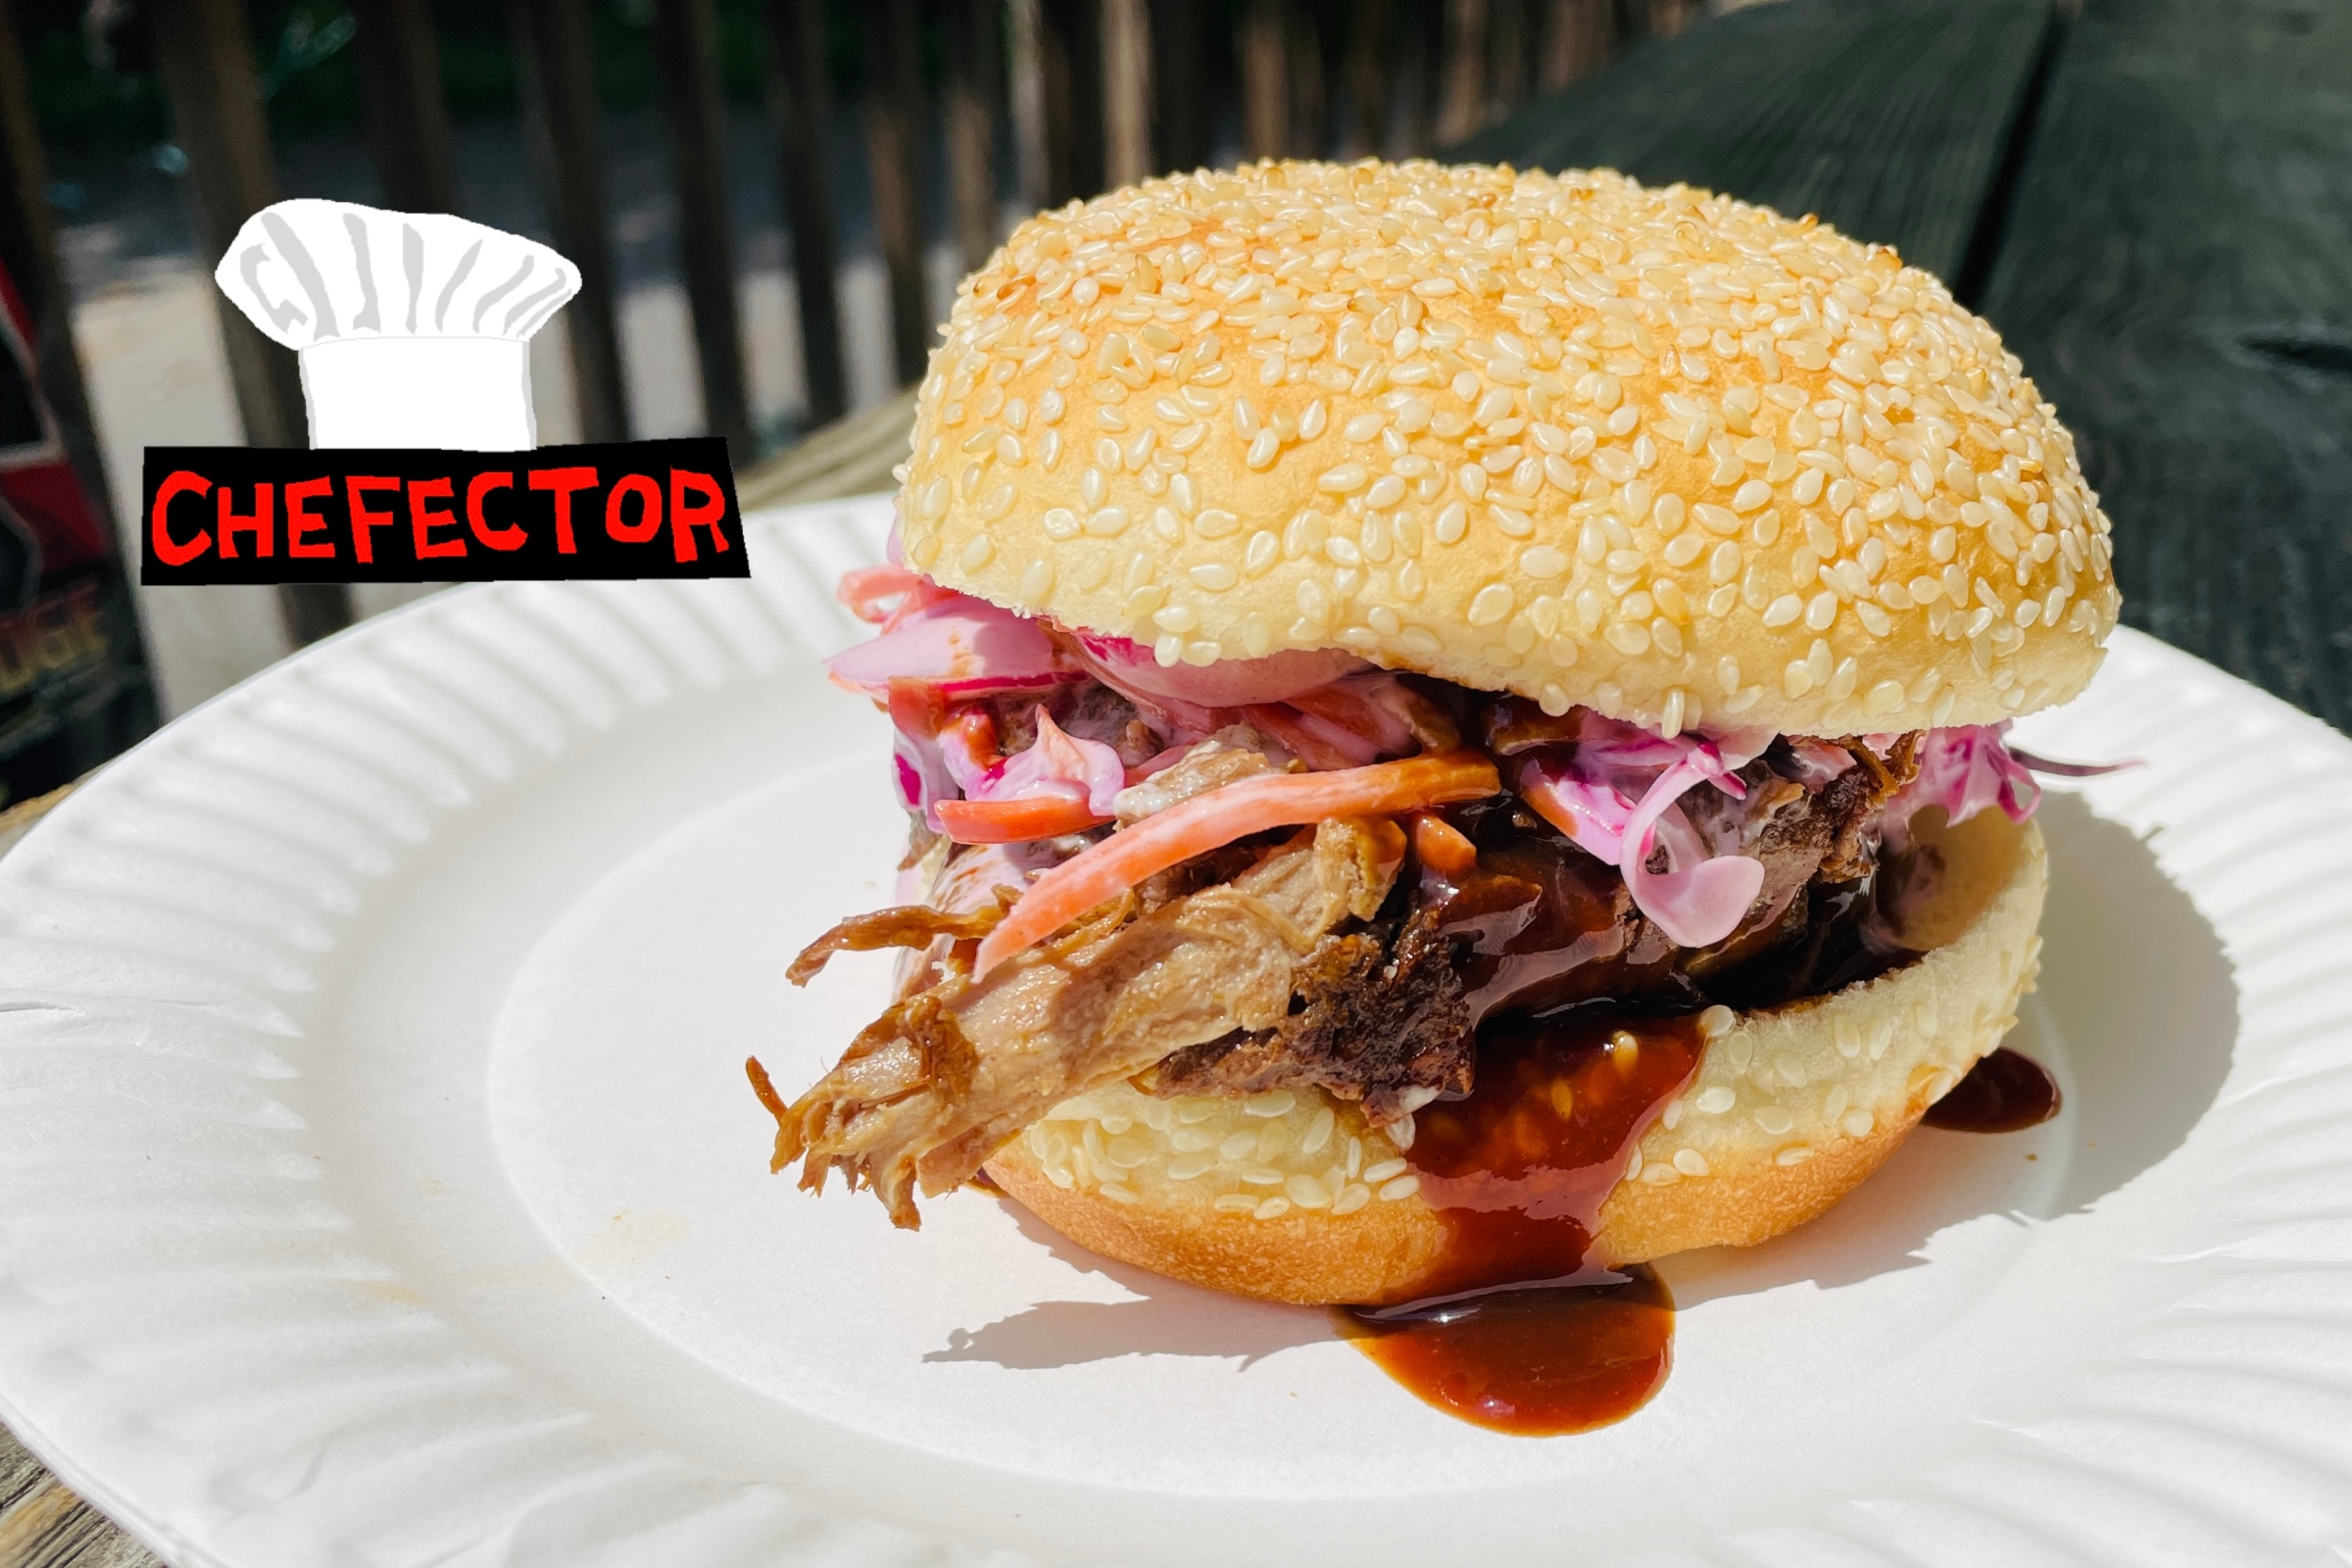 A pulled pork sandwich on a paper plate.